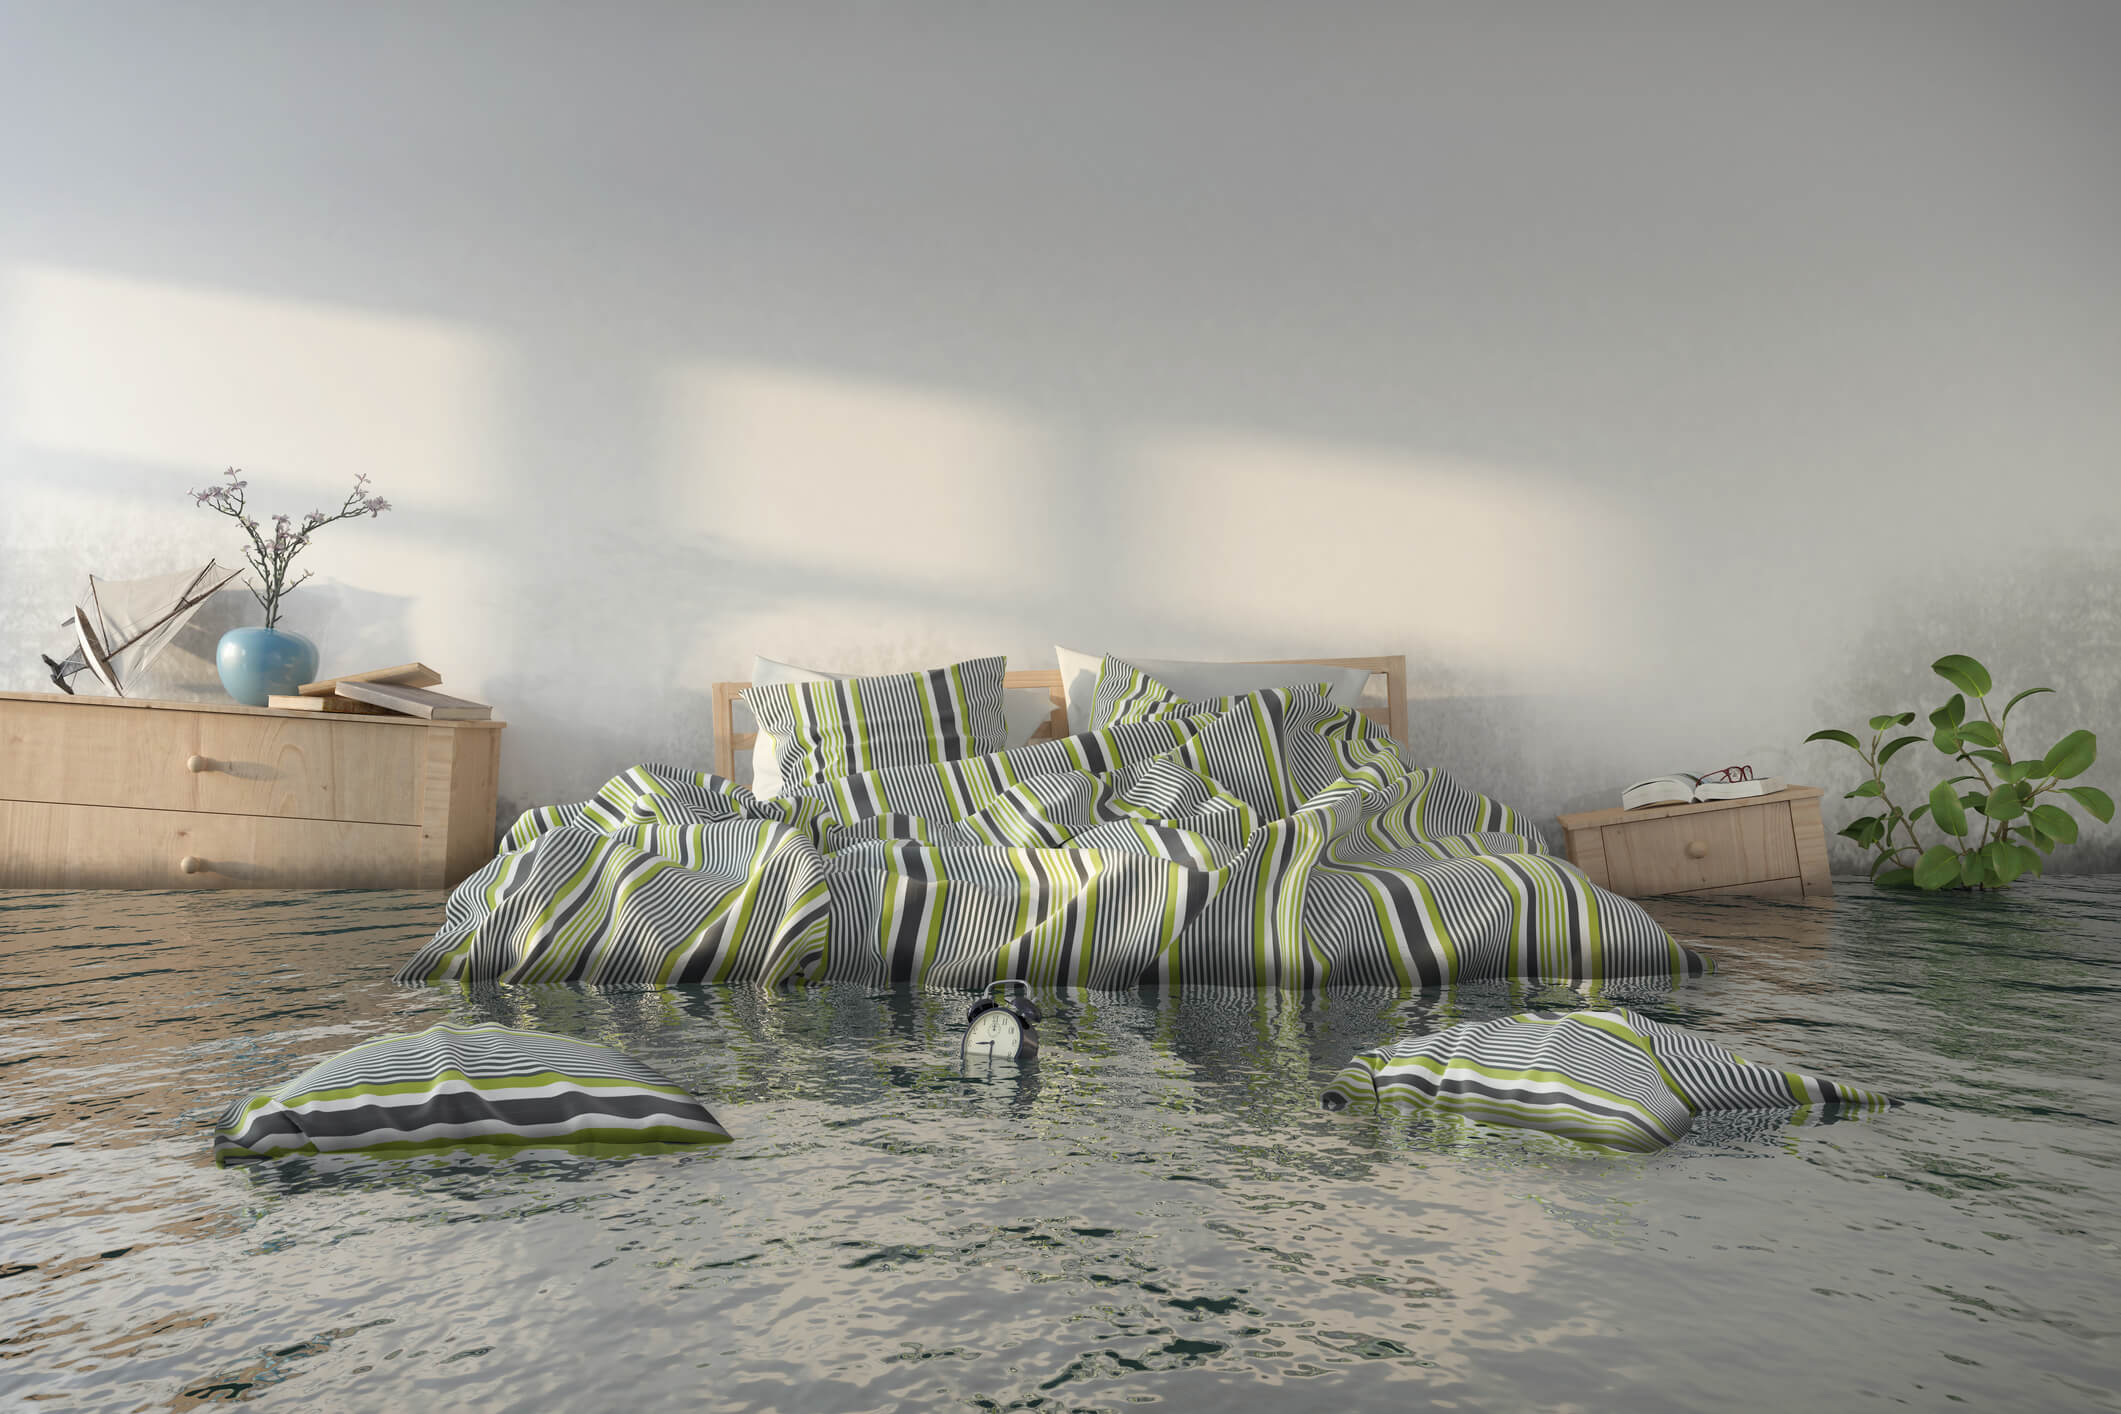 Water Damage and Your Belongings